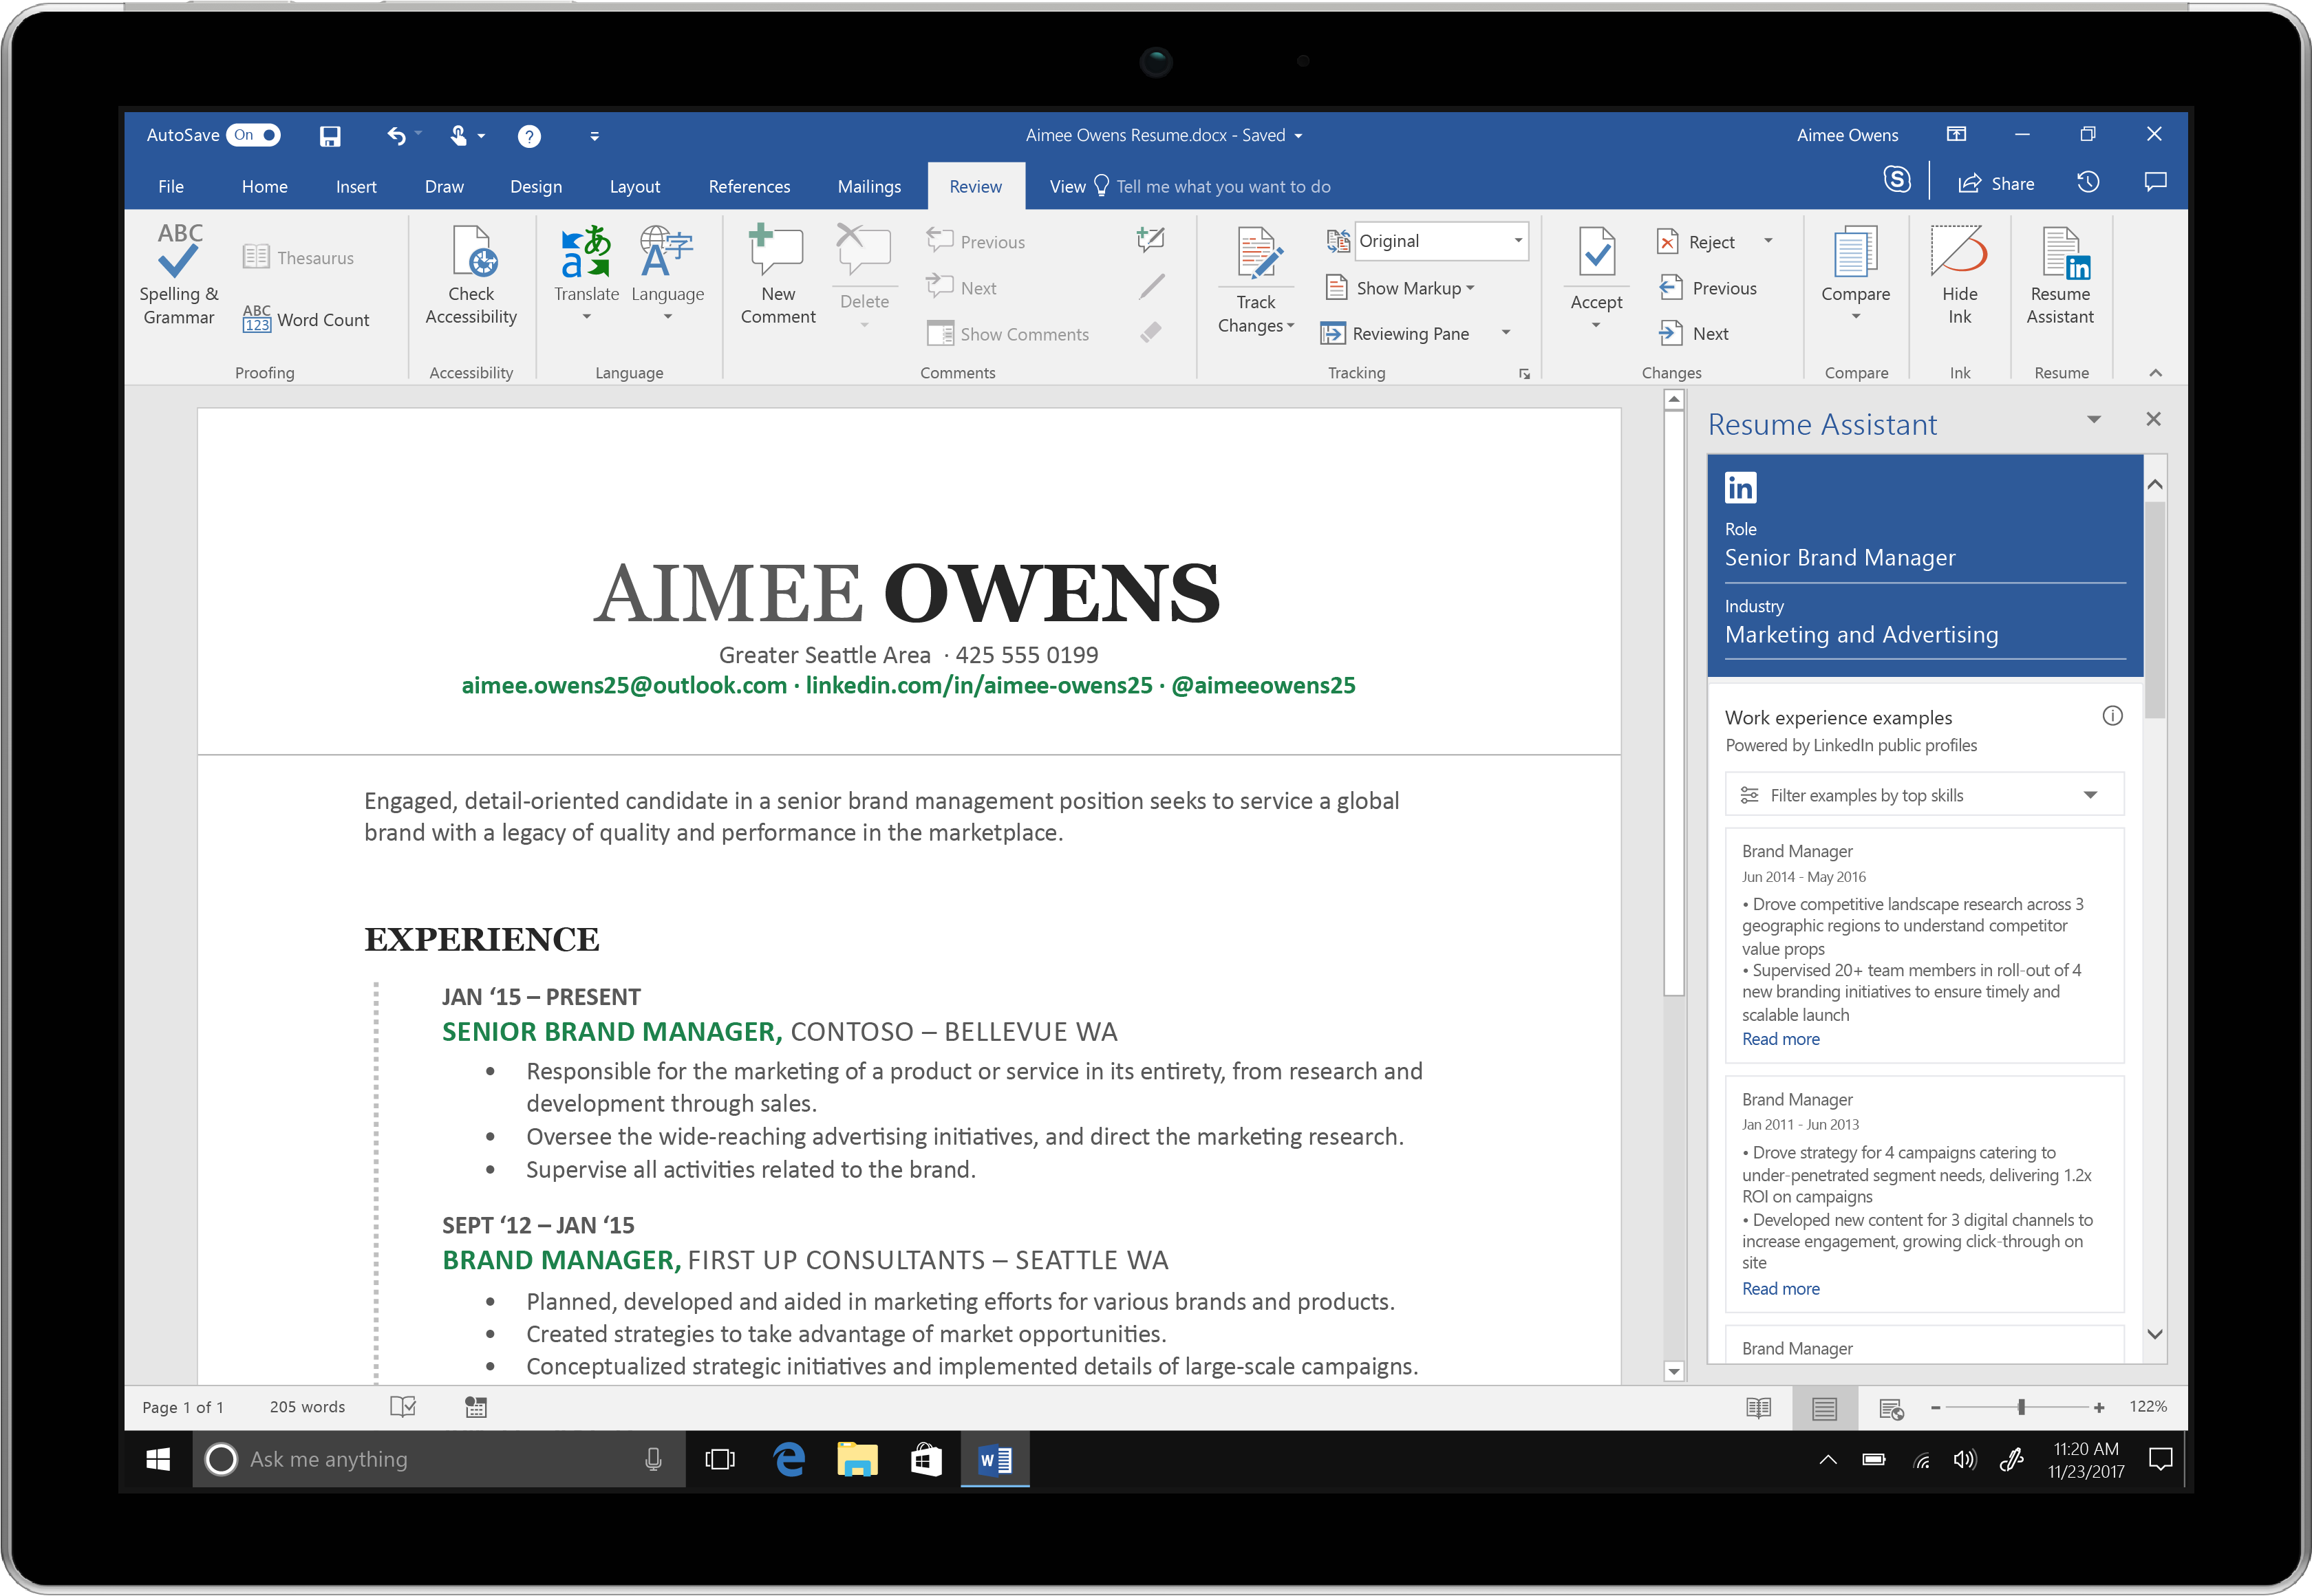 Microsoft Word adds LinkedInpowered Resume Assistant to